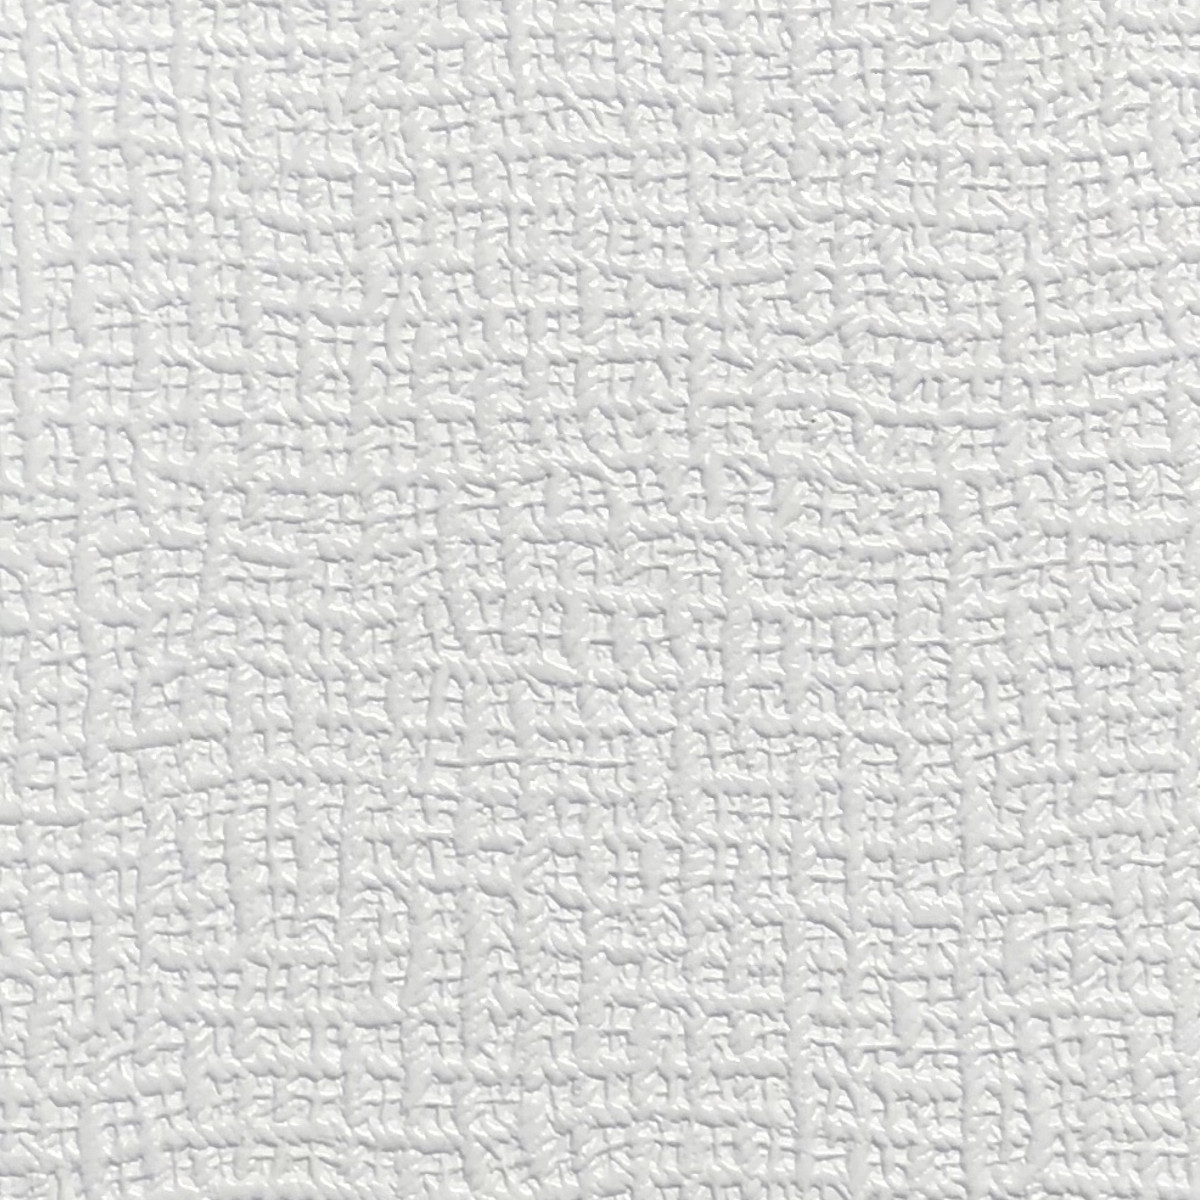 Tolex - 91 - White Panama - Free Shipping Across Canada over $150